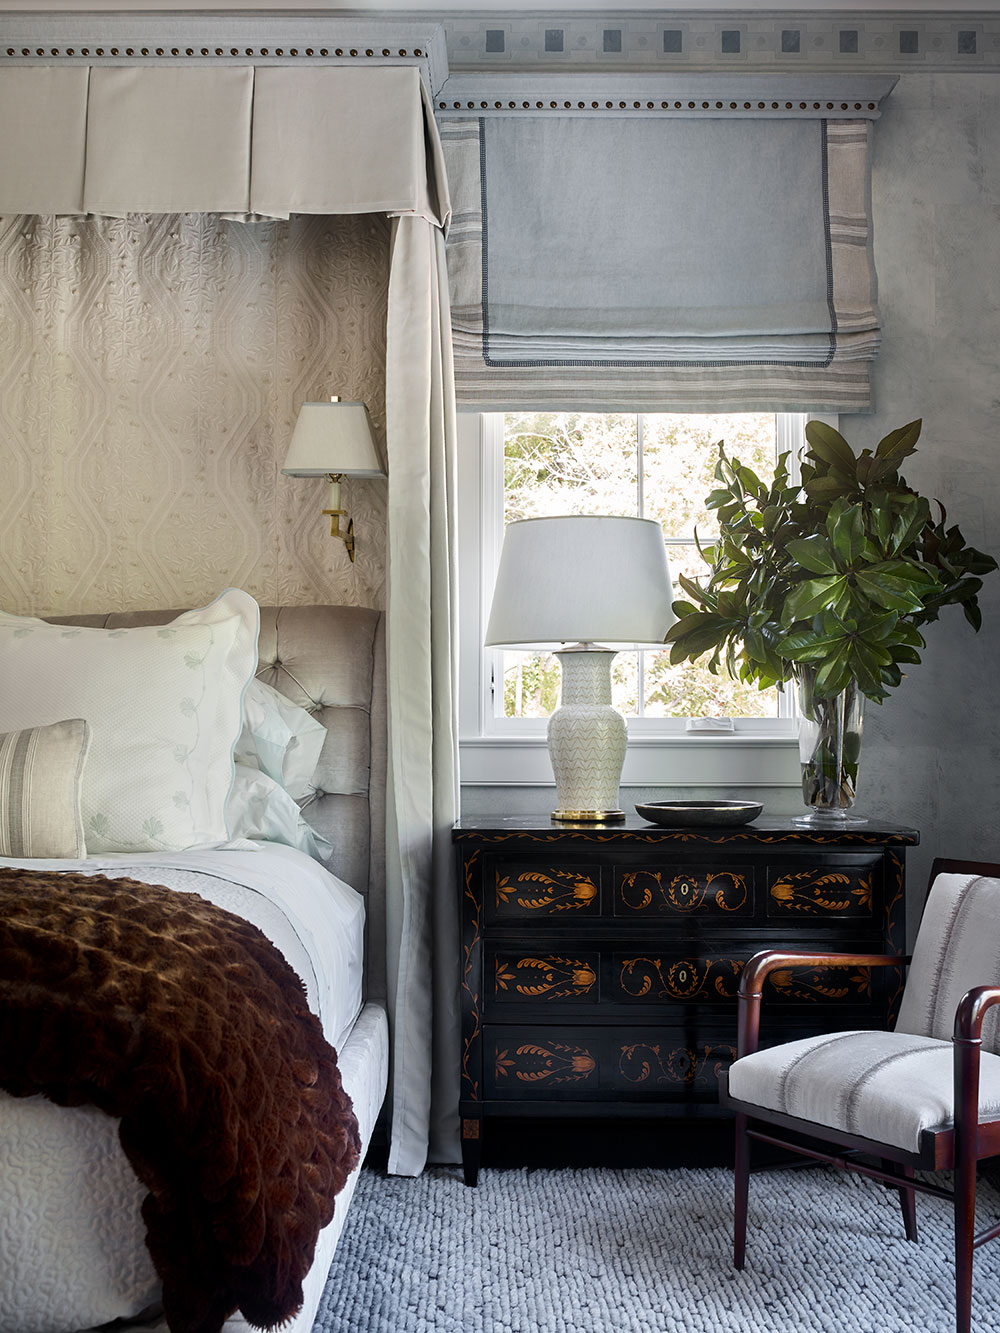 A master bedroom design by James Michael Howard